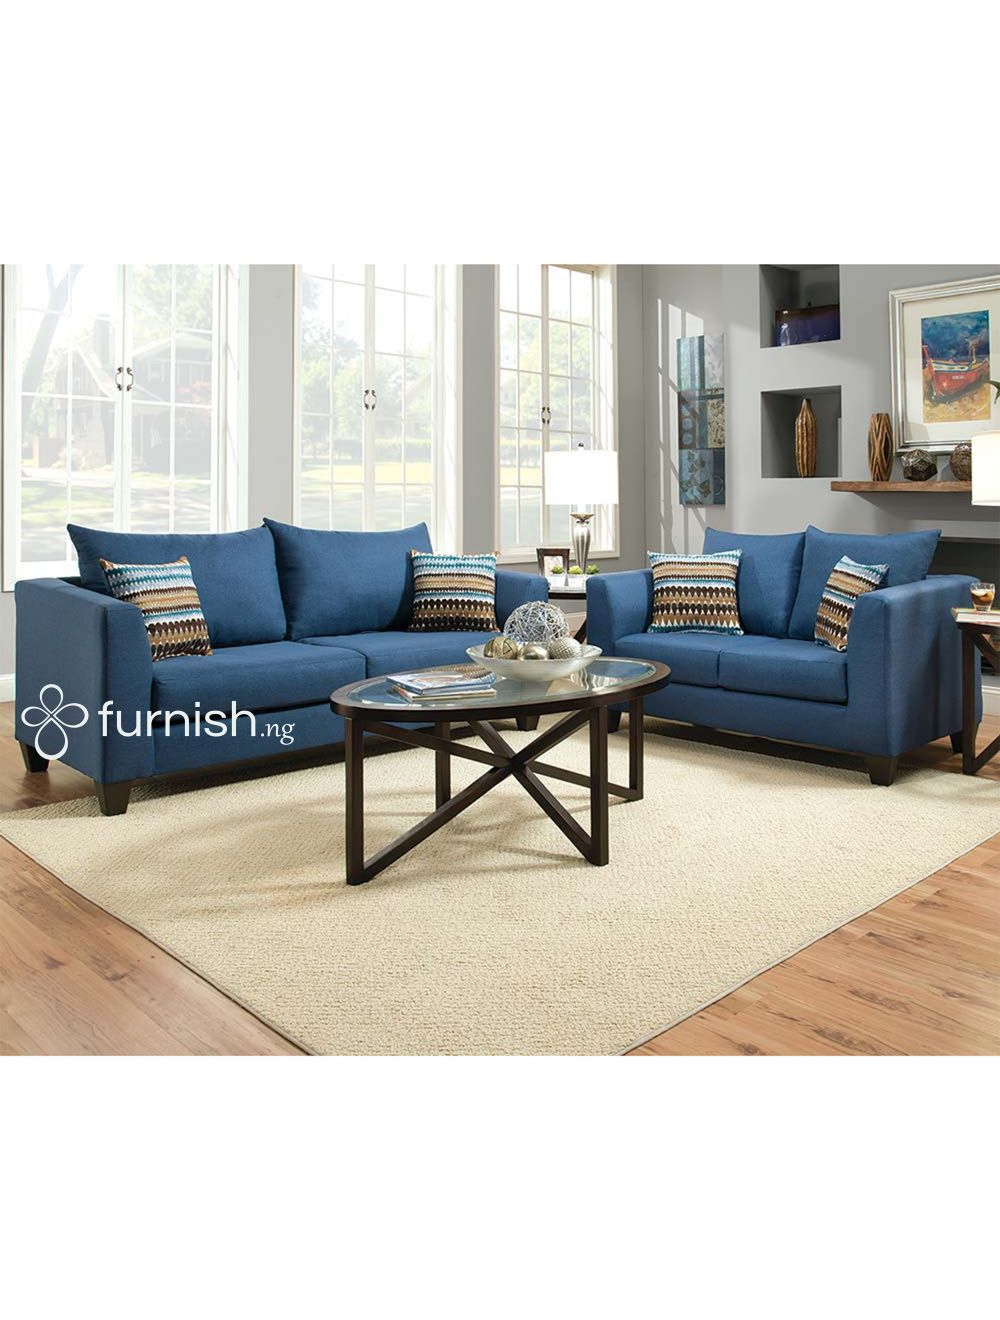 Buy The Ibinoze 5 Piece Modern Living Room Set 5 Seater Sofa Set 1 intended for 5 Piece Living Room Set